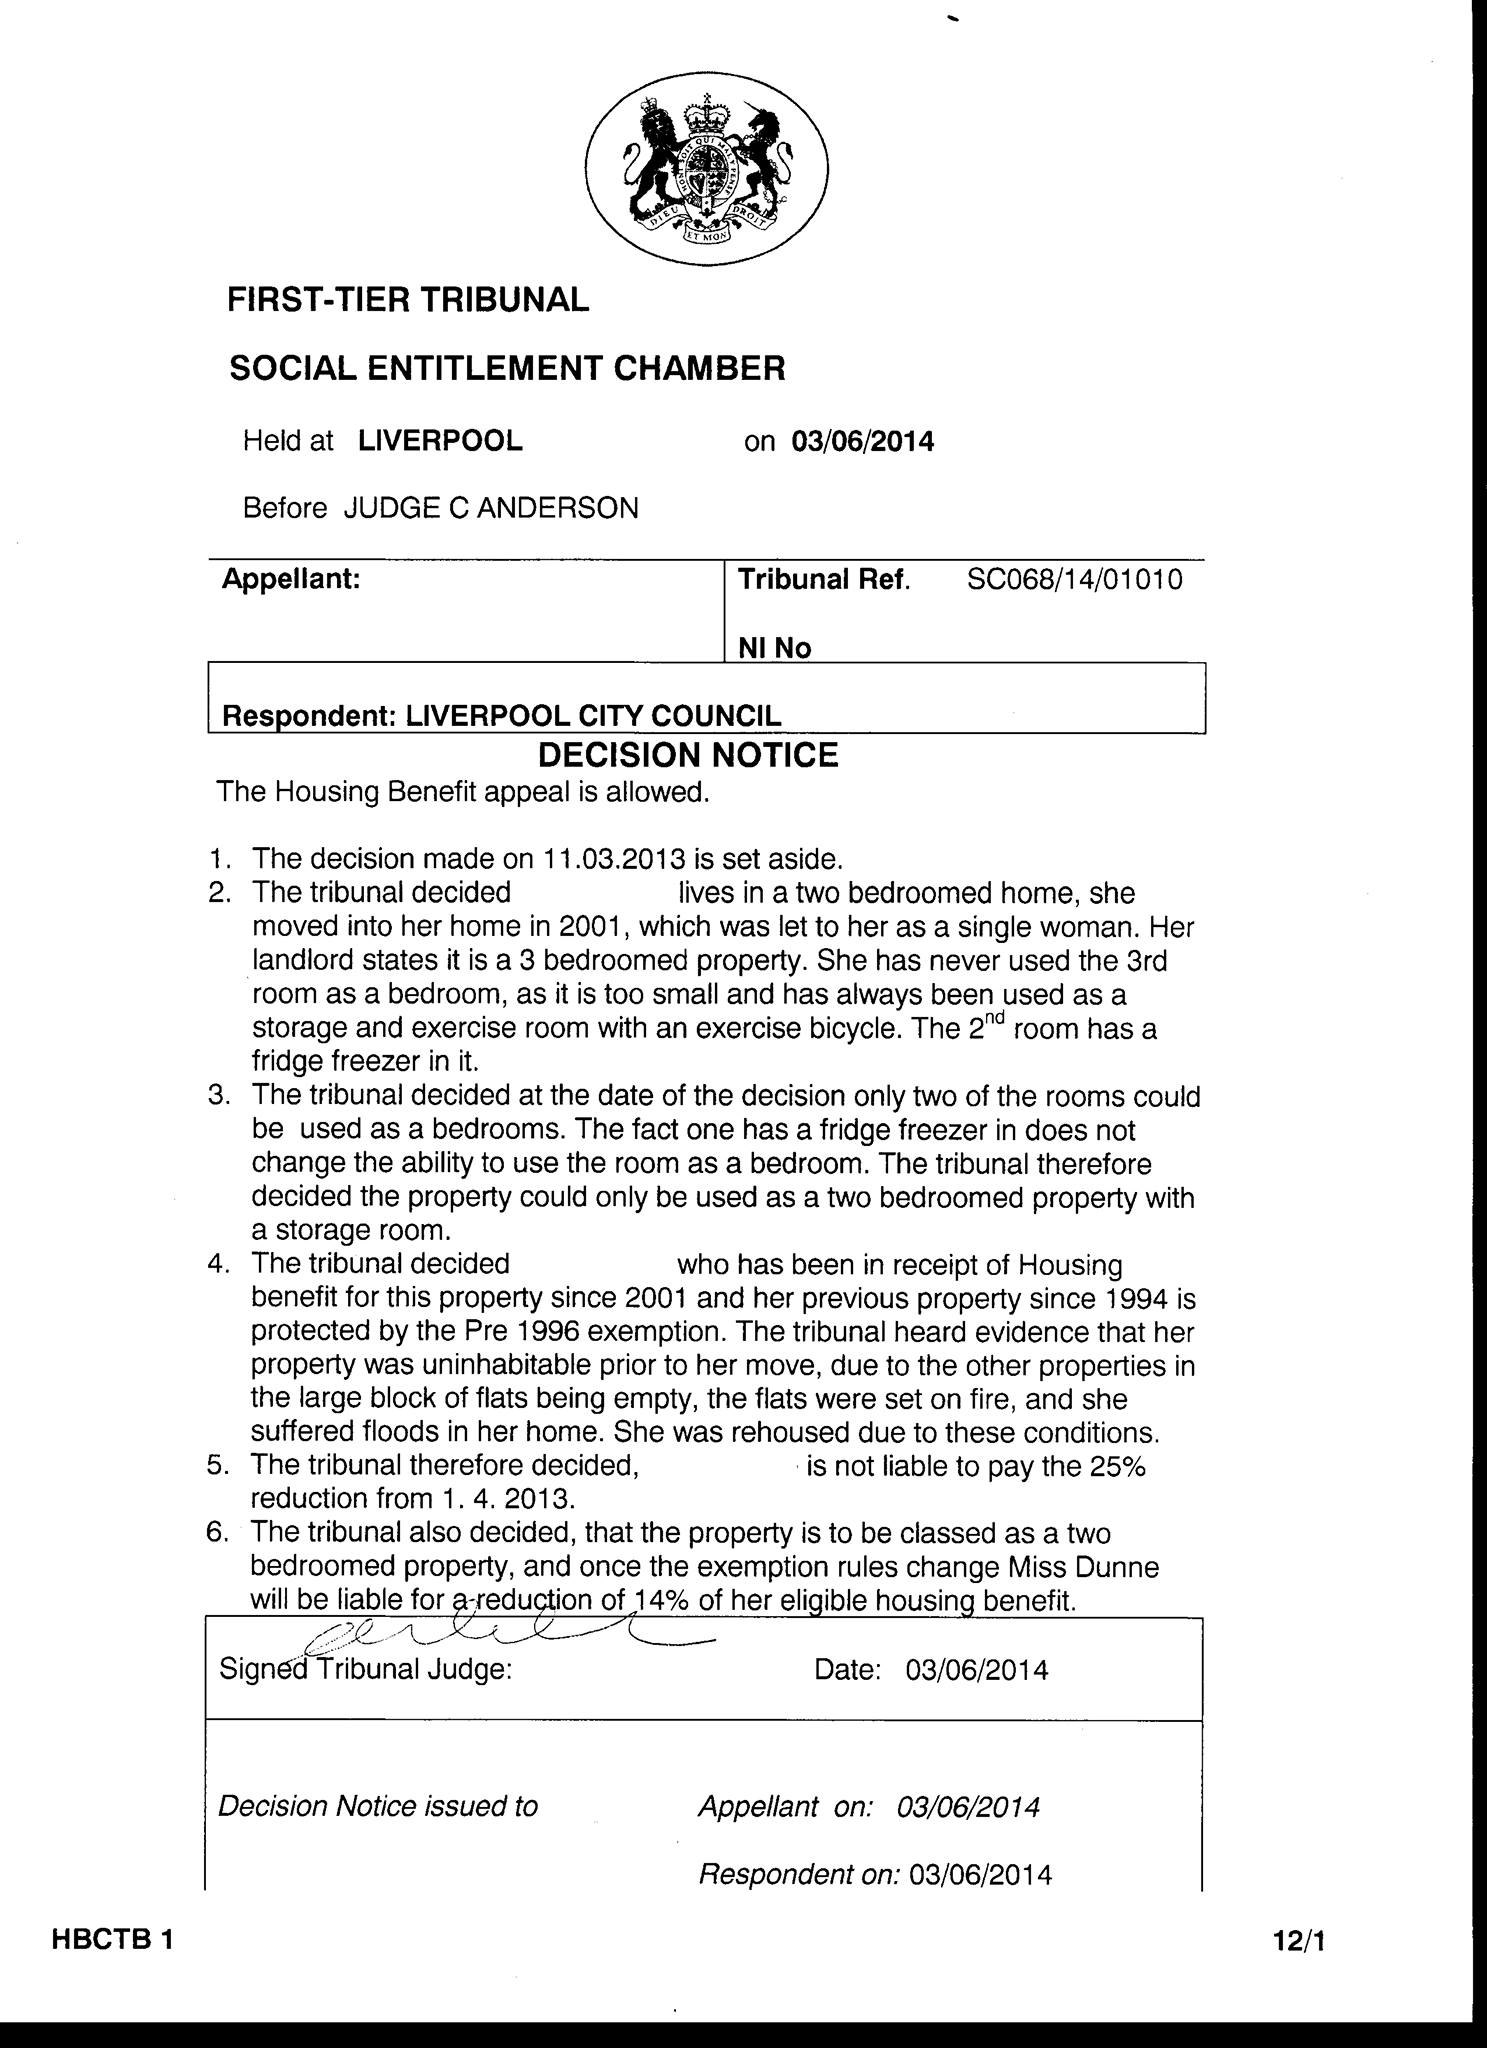 Bedroom Tax Appeals At Ftt  Nearly Legal Housing Law News And Comment With Shelter Lodger Agreement Template